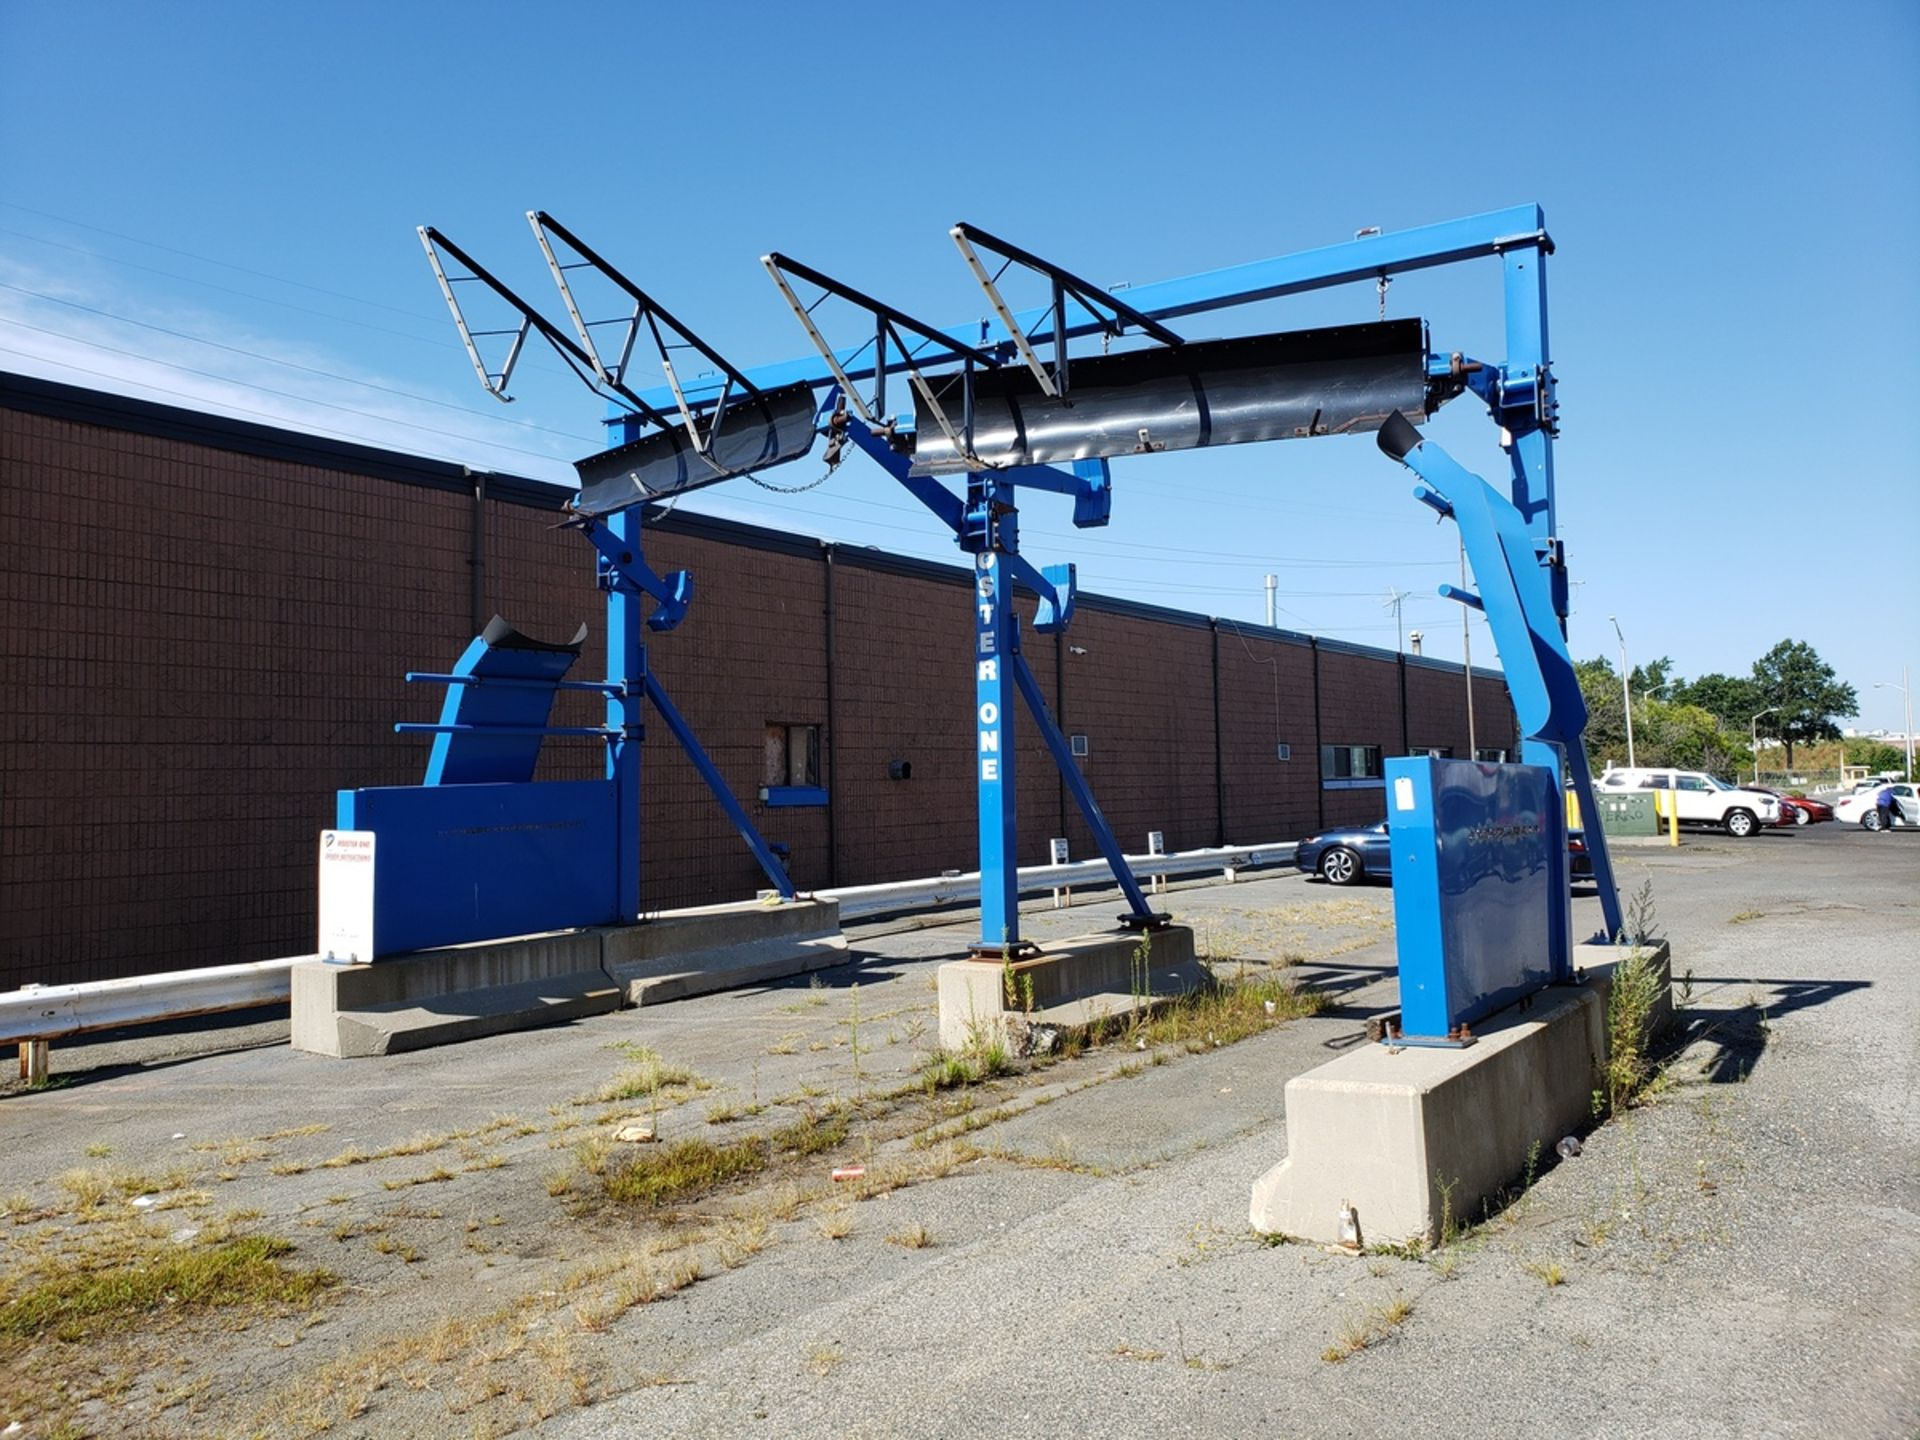 JD Trailer Protection Company Rooster One Trailer Snow Removal Equipment   Rig Fee: $4500